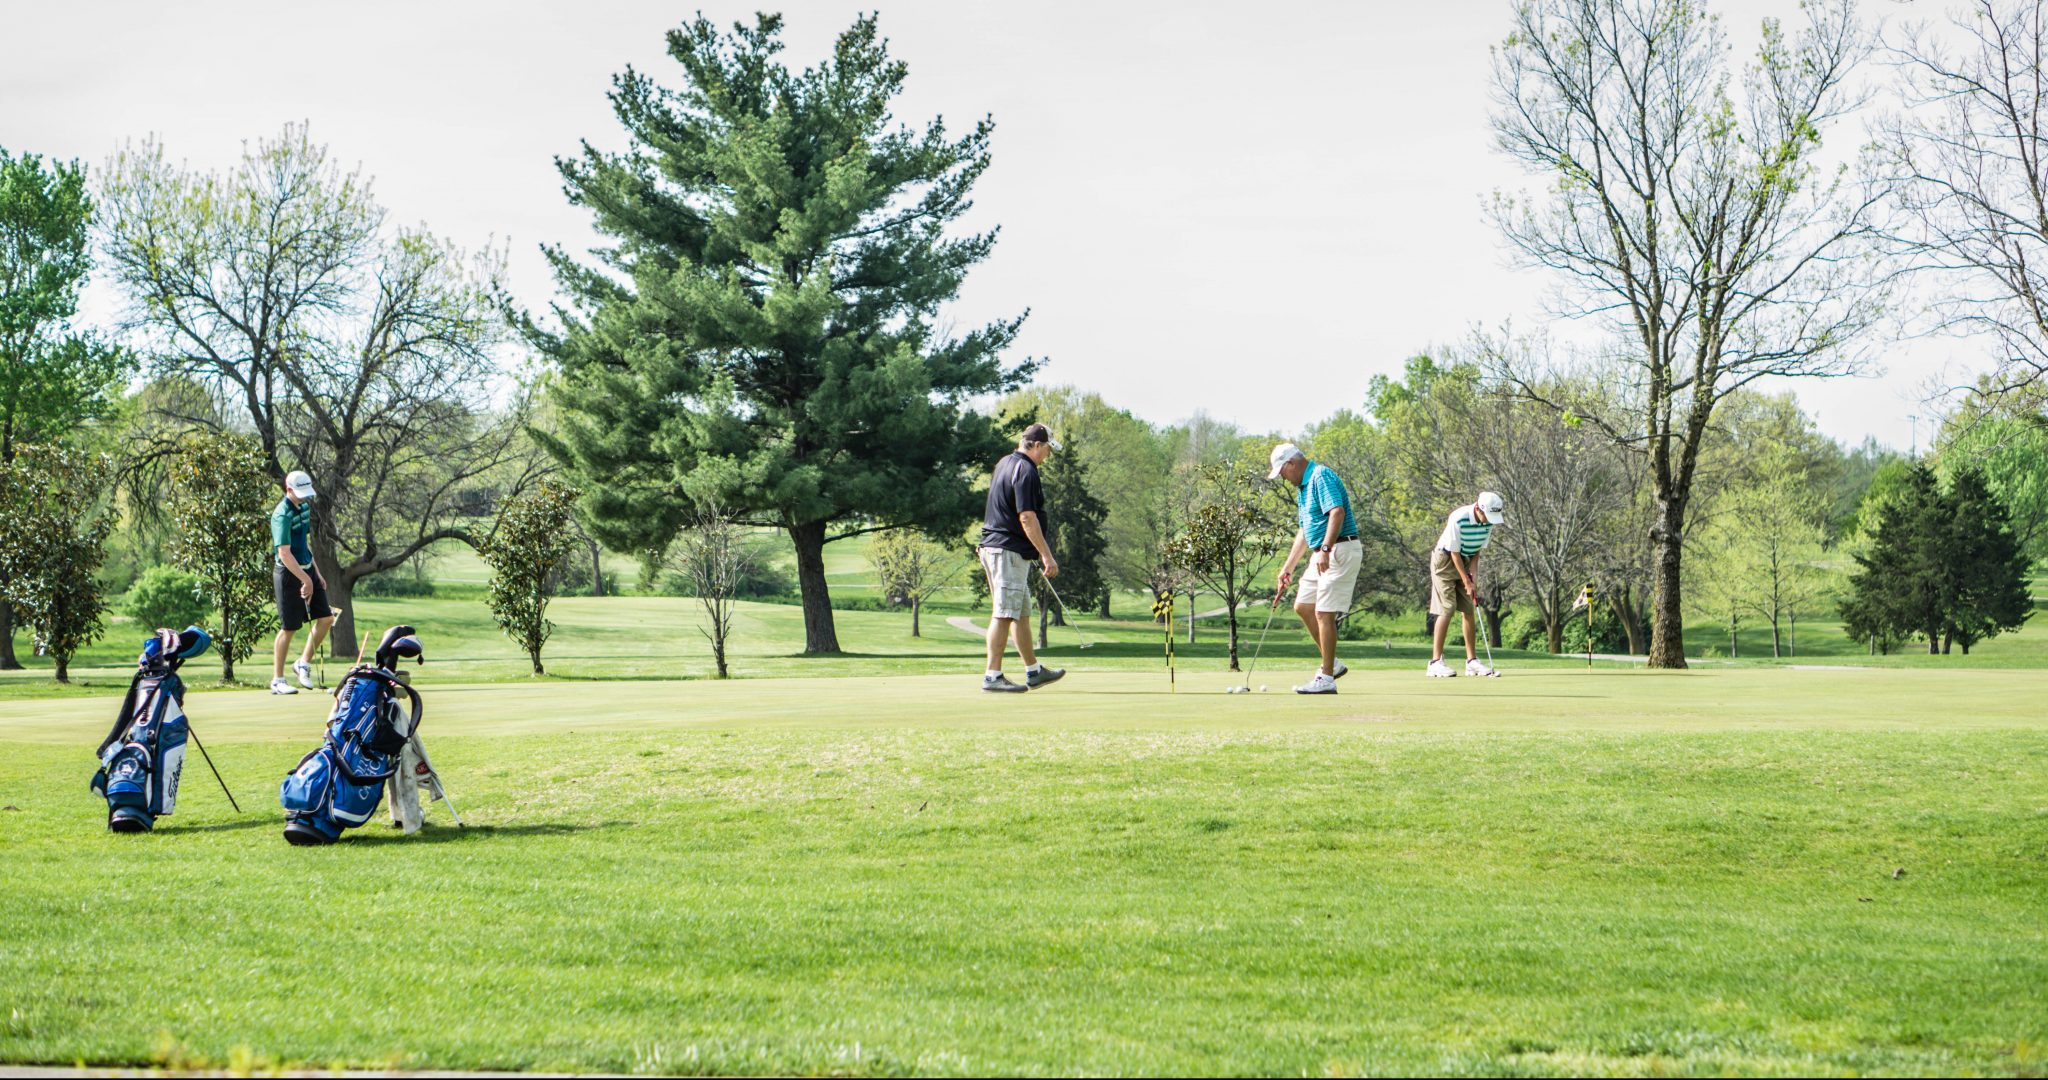 City of Columbia Golf Courses | Columbia MO | Golf Courses